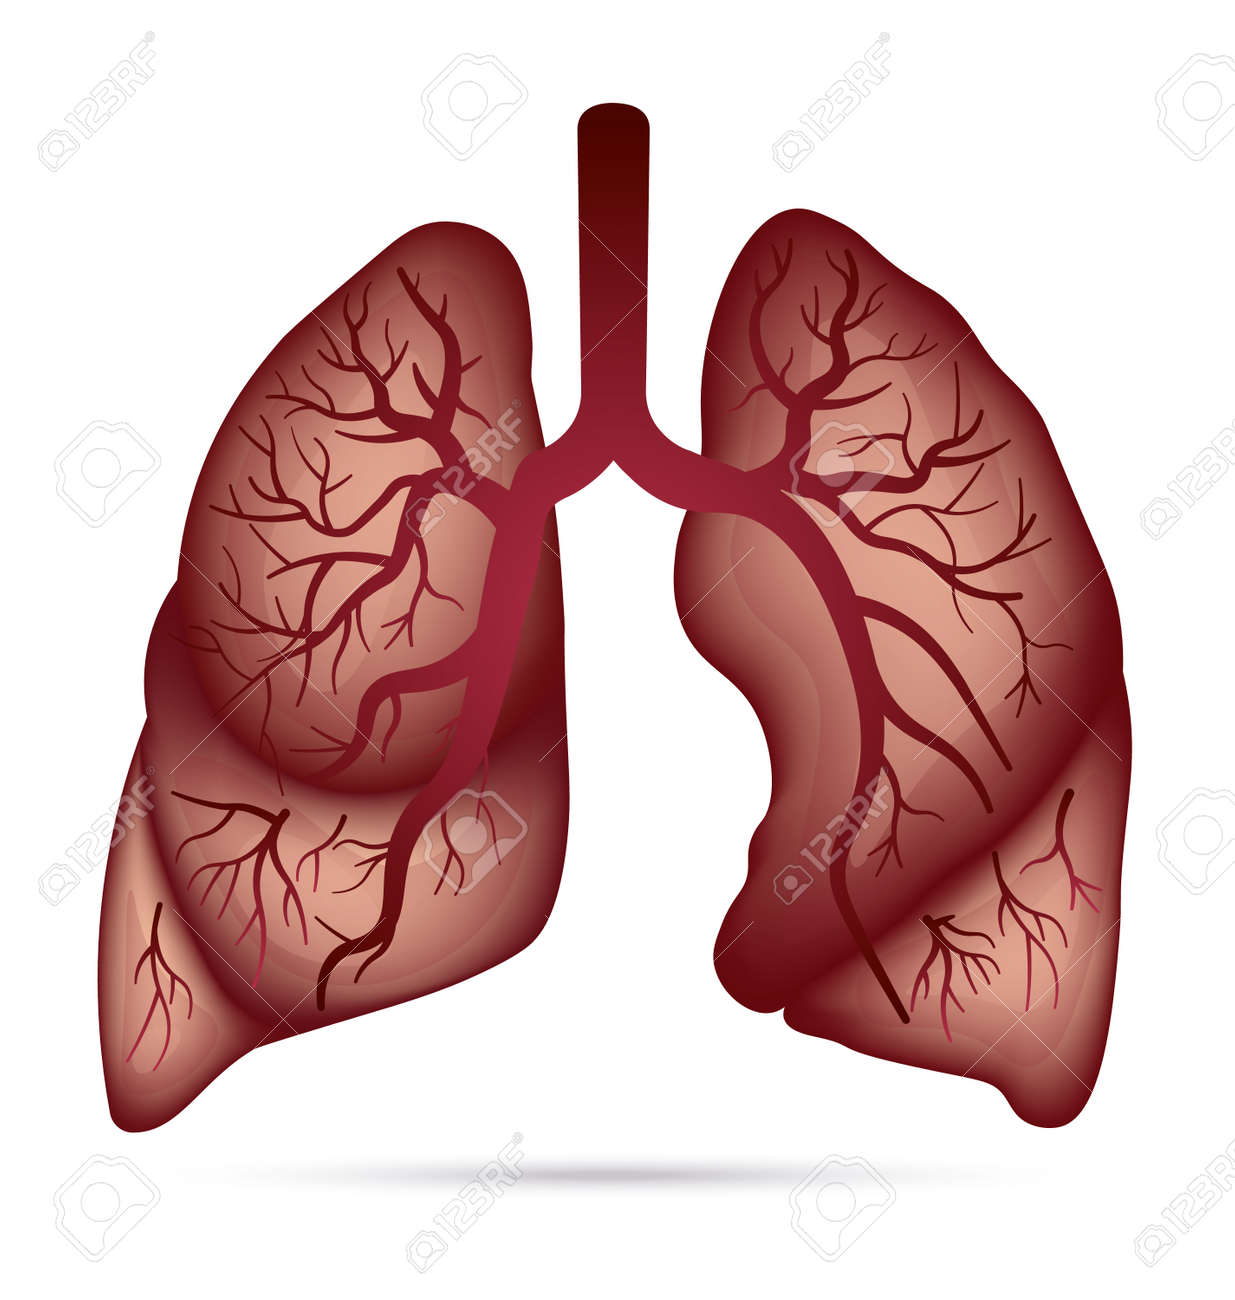 Human lungs anatomy for asthma tuberculosis pneumonia lung human lungs anatomy for asthma tuberculosis pneumonia lung cancer diagram in detail illustration ccuart Image collections